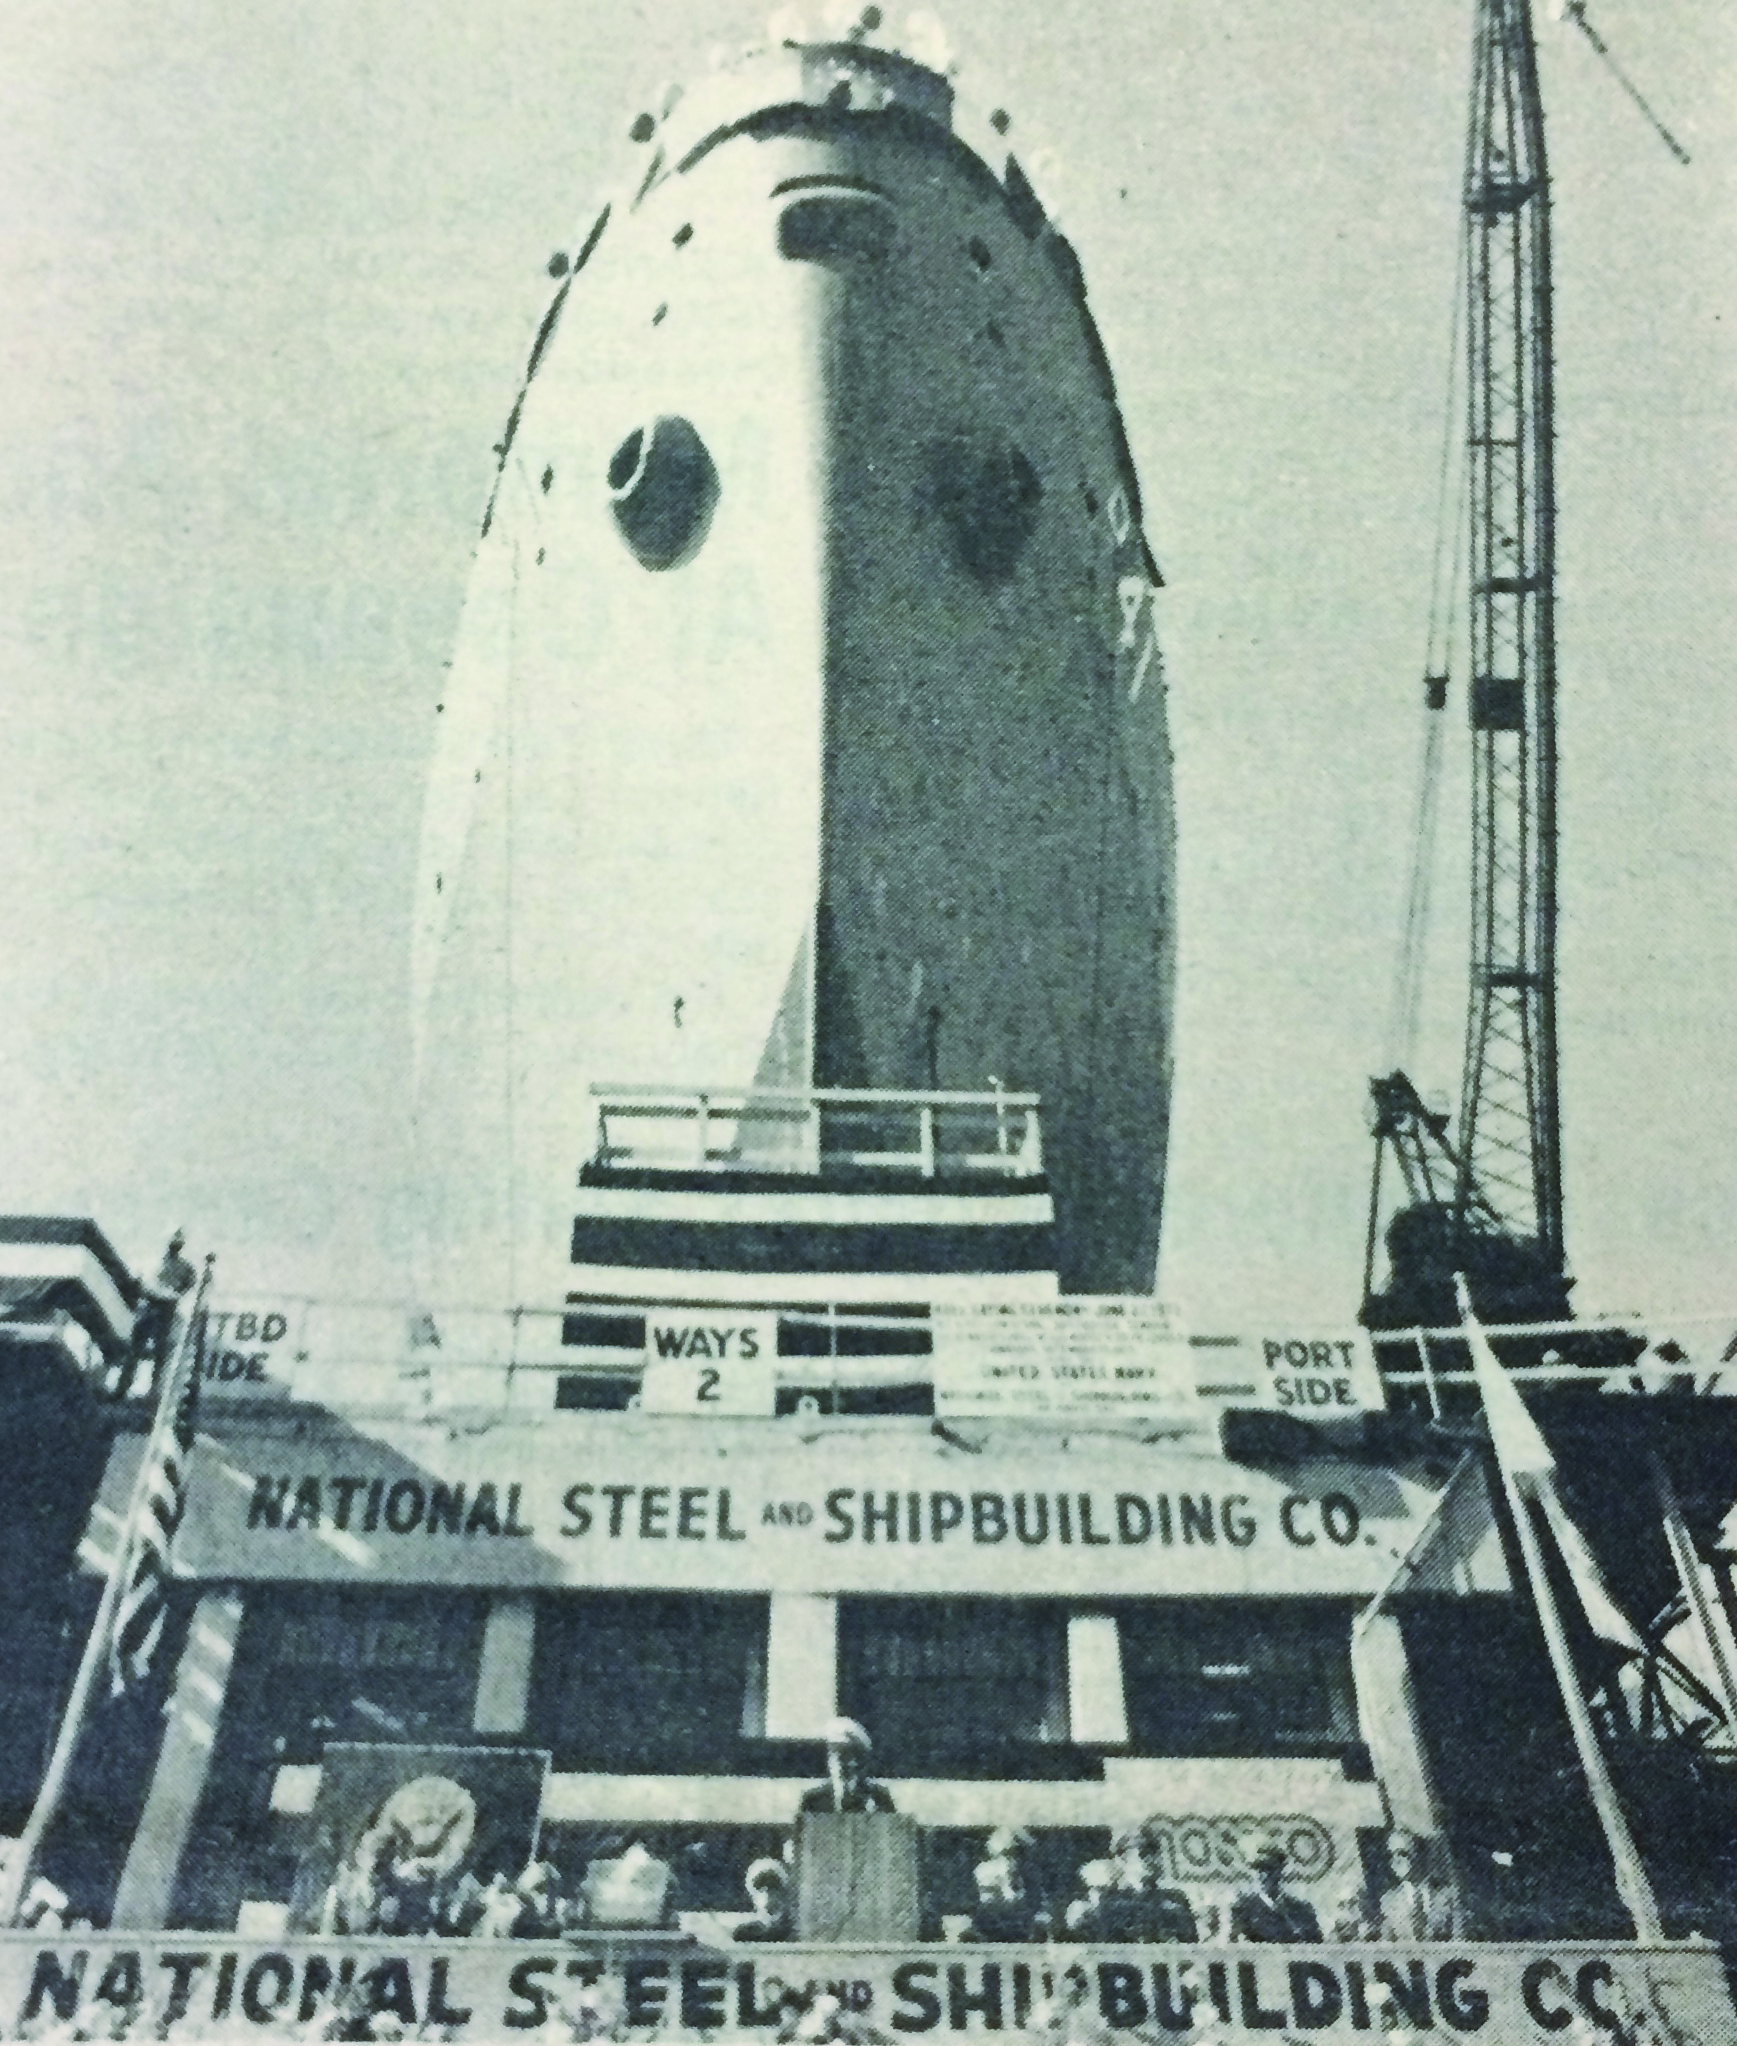 1979: Navy destroyer tender launched at NASSCO